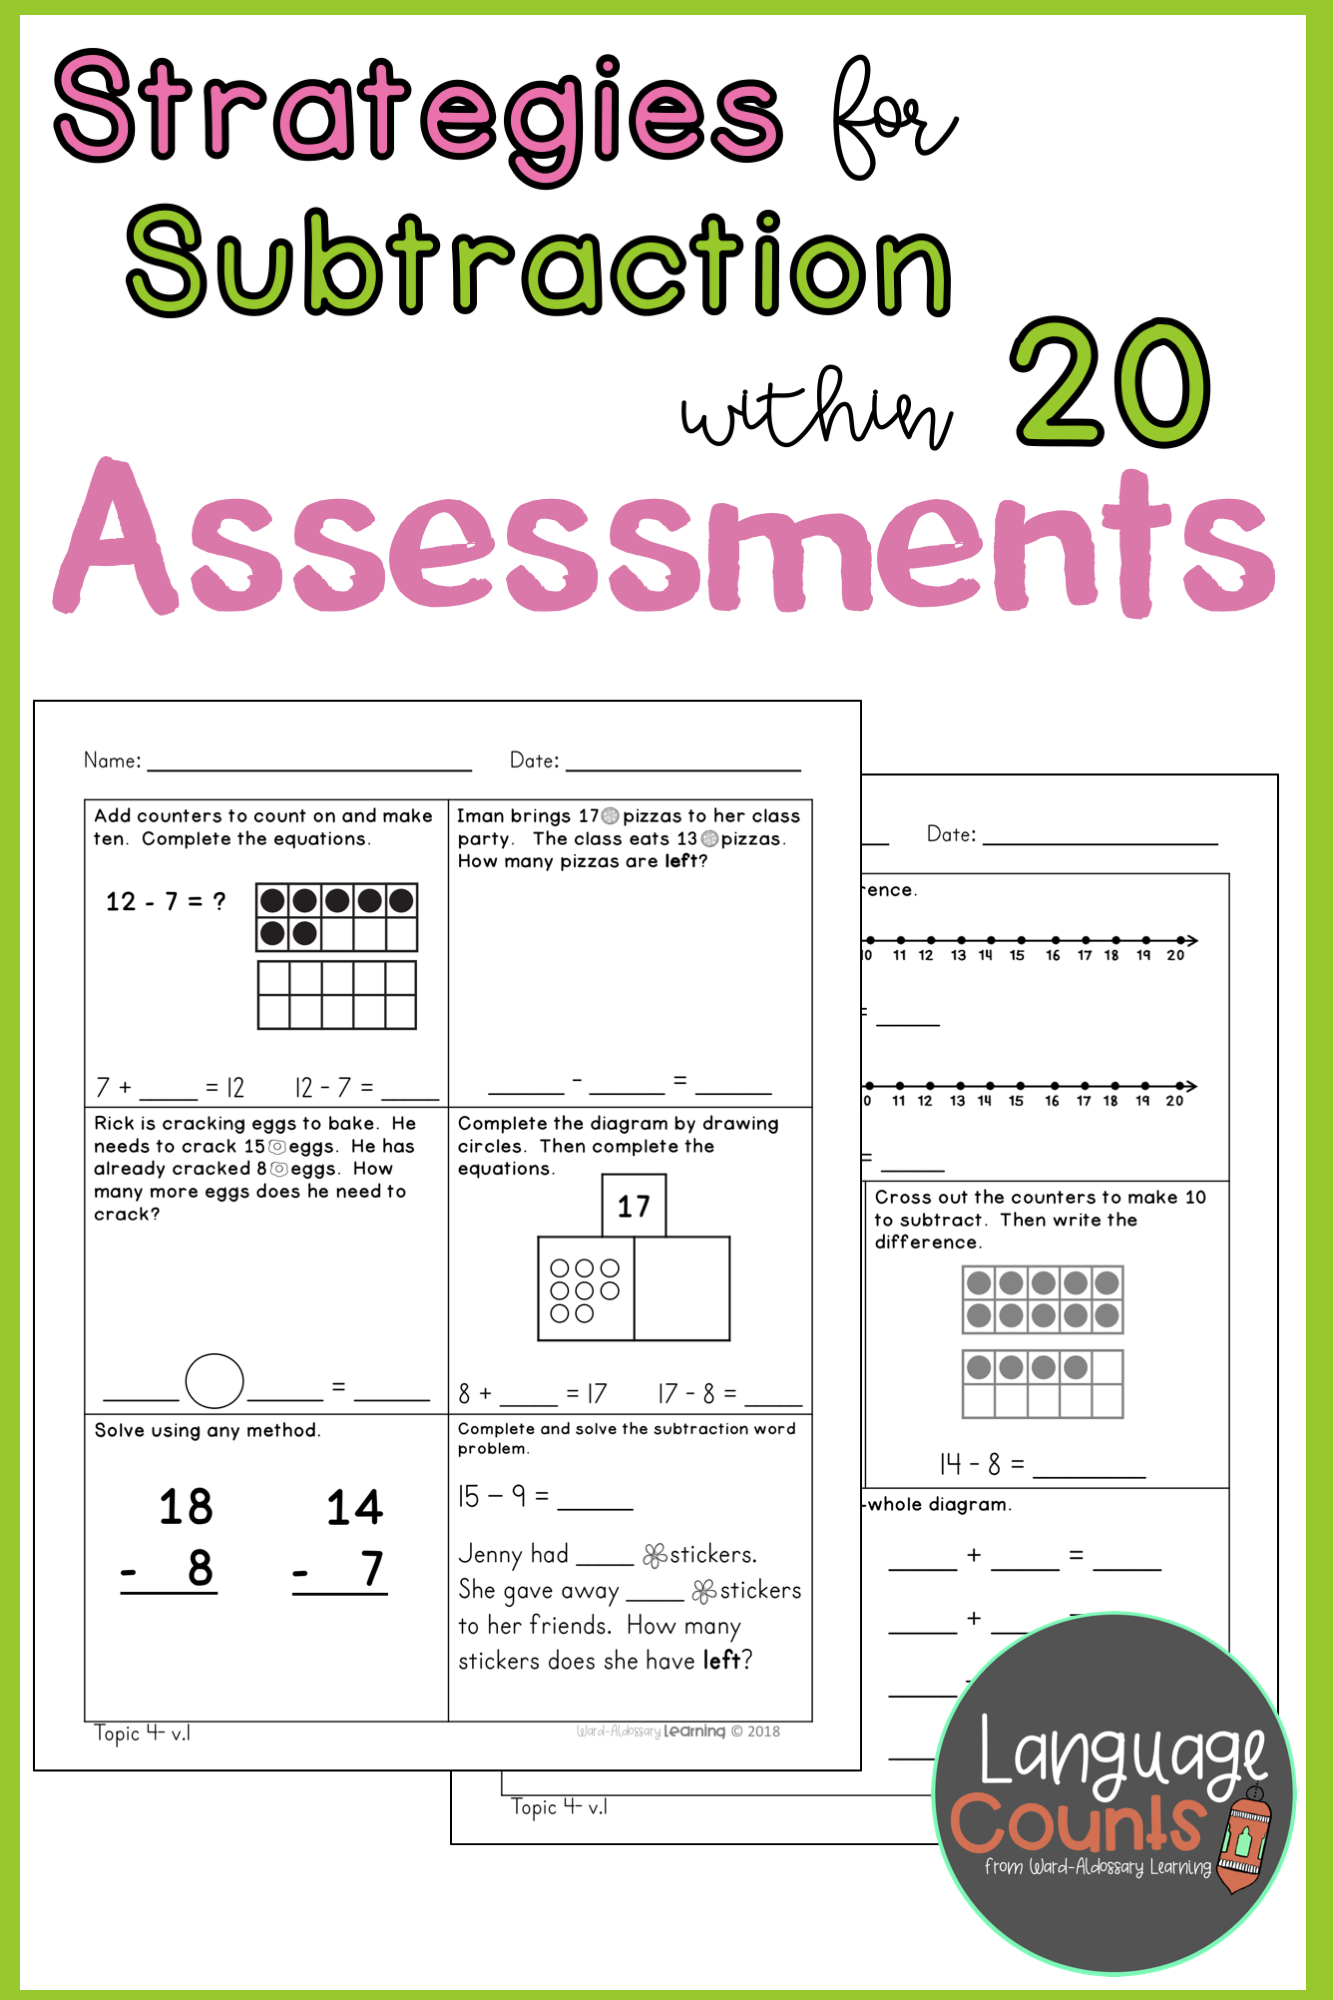 Assess Your Students Mastery Of Addition Strategies To Add Up To 20 With These Two Assessments There Are Two Ve Subtraction Strategies Subtraction Assessment [ 2000 x 1333 Pixel ]